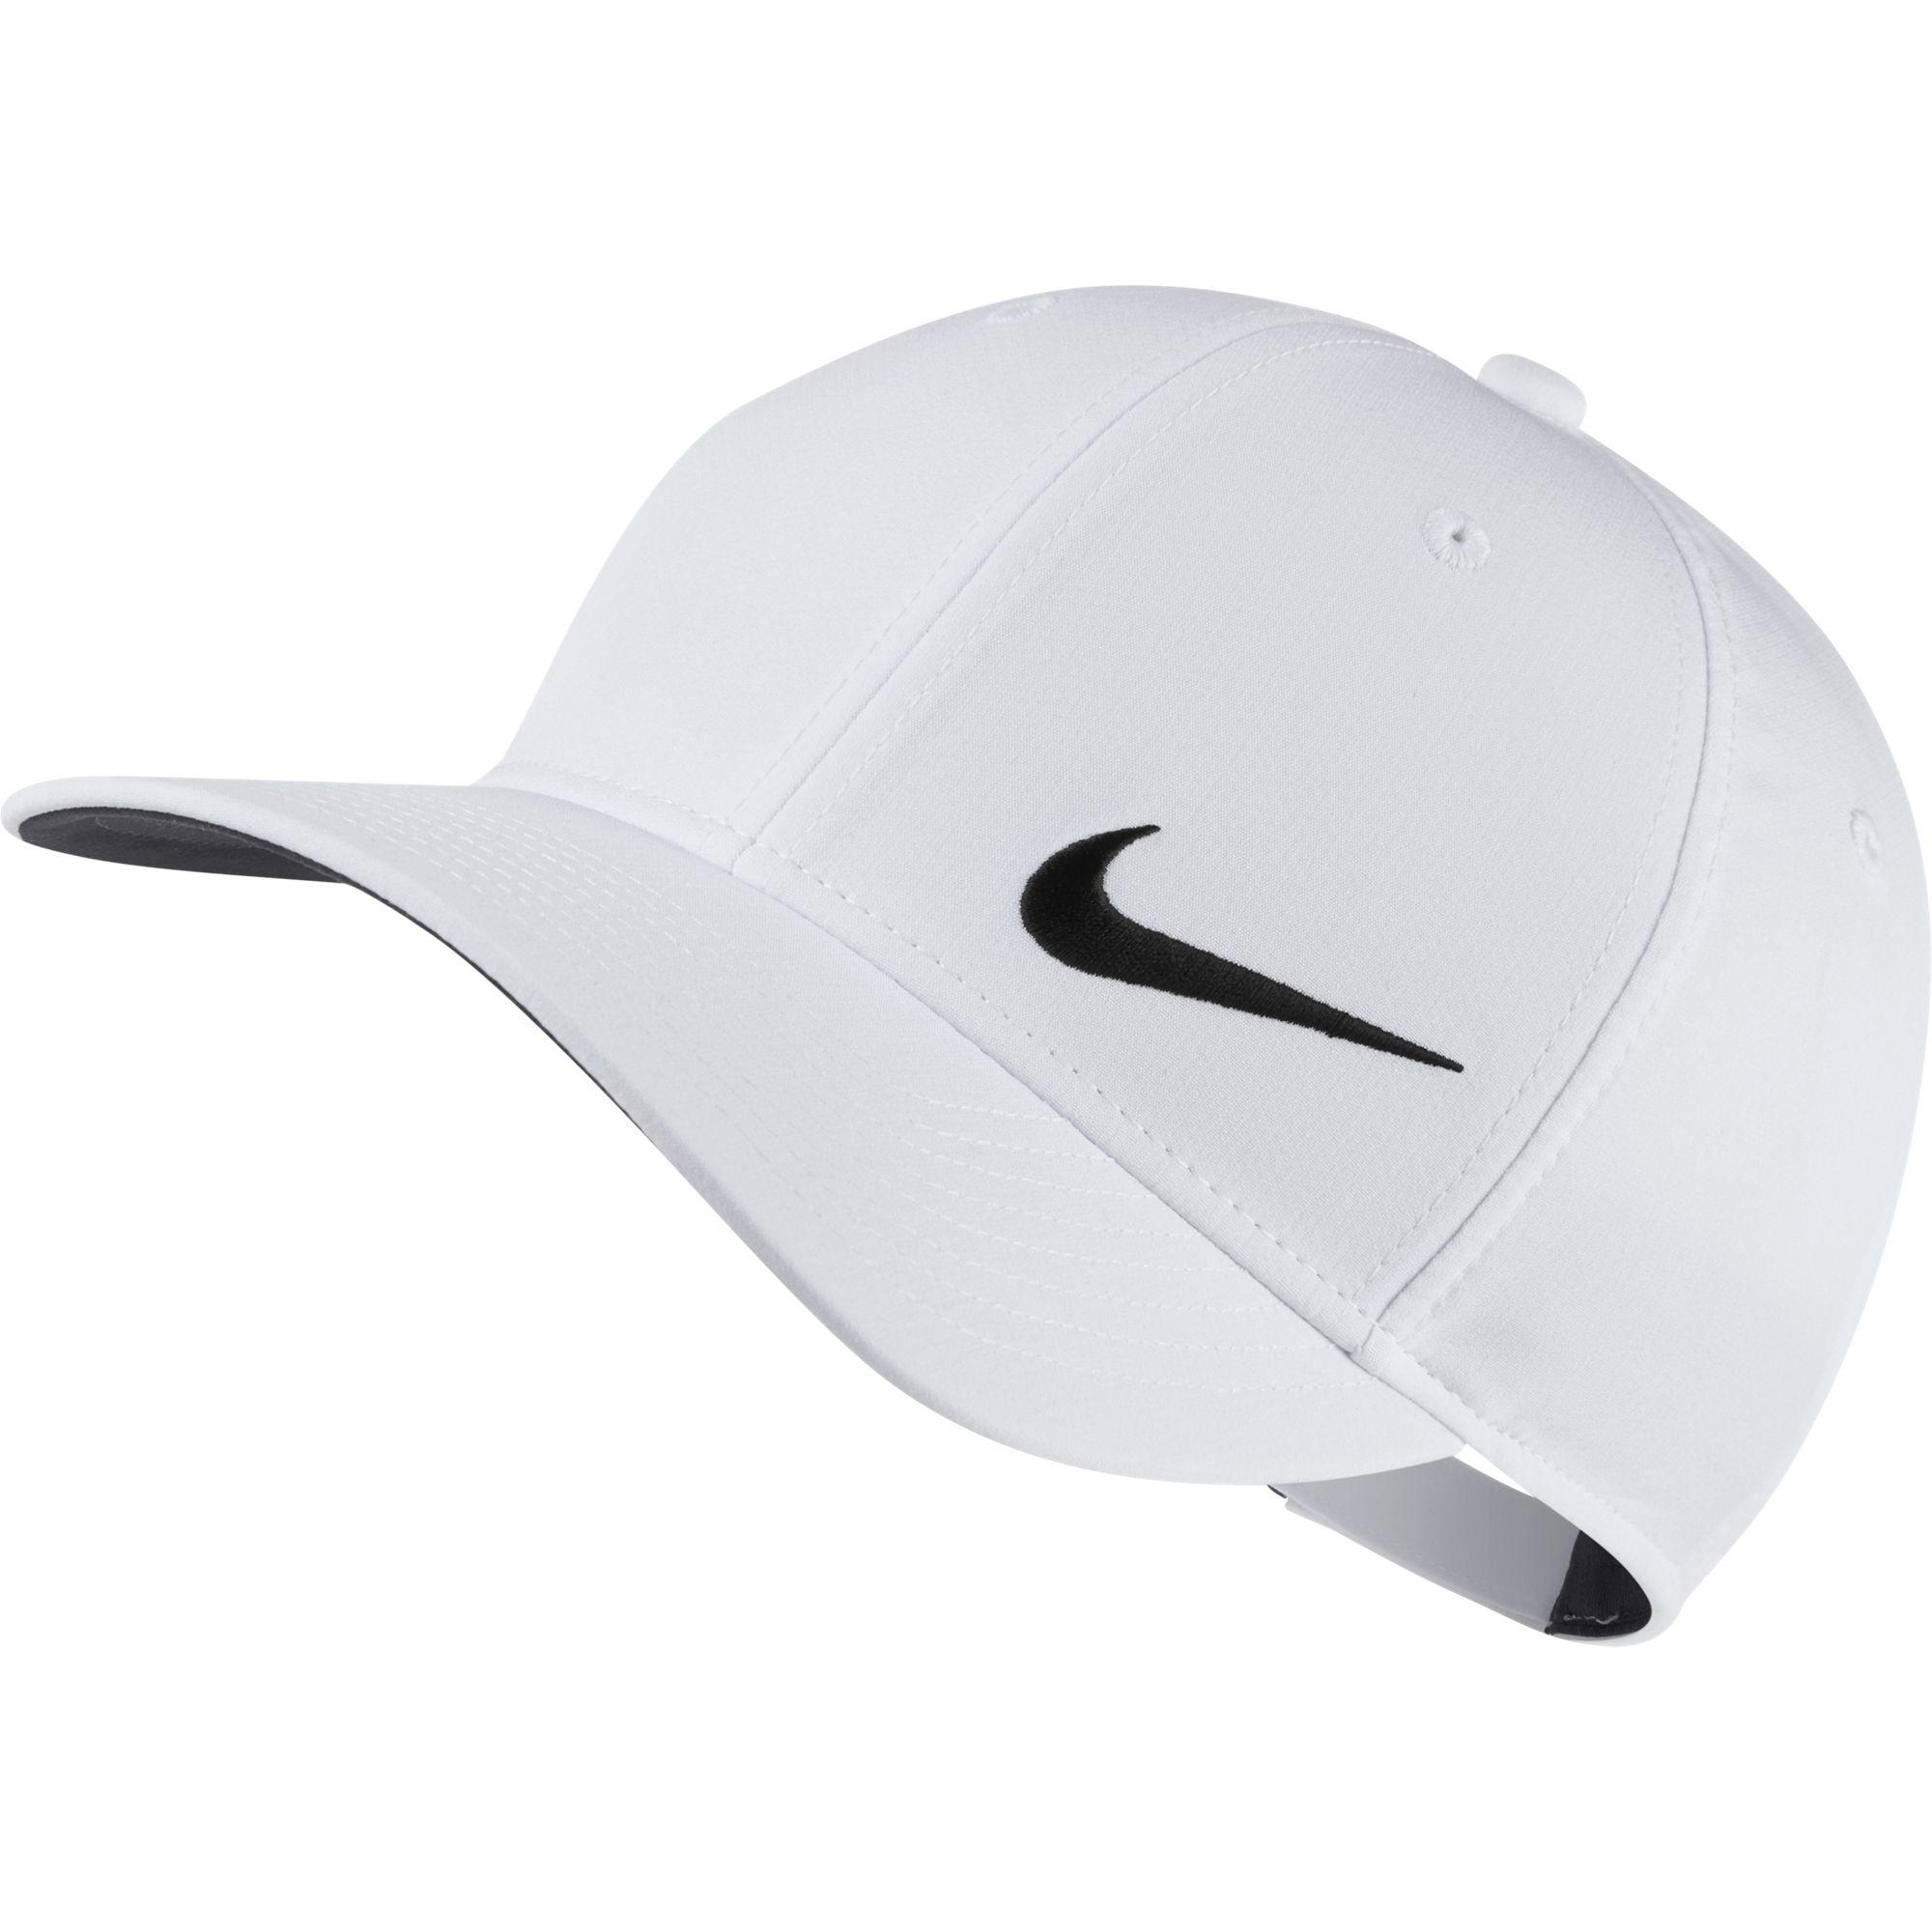 separation shoes c9f8f ca03a Nike. Men s White Classic99 Golf Hat